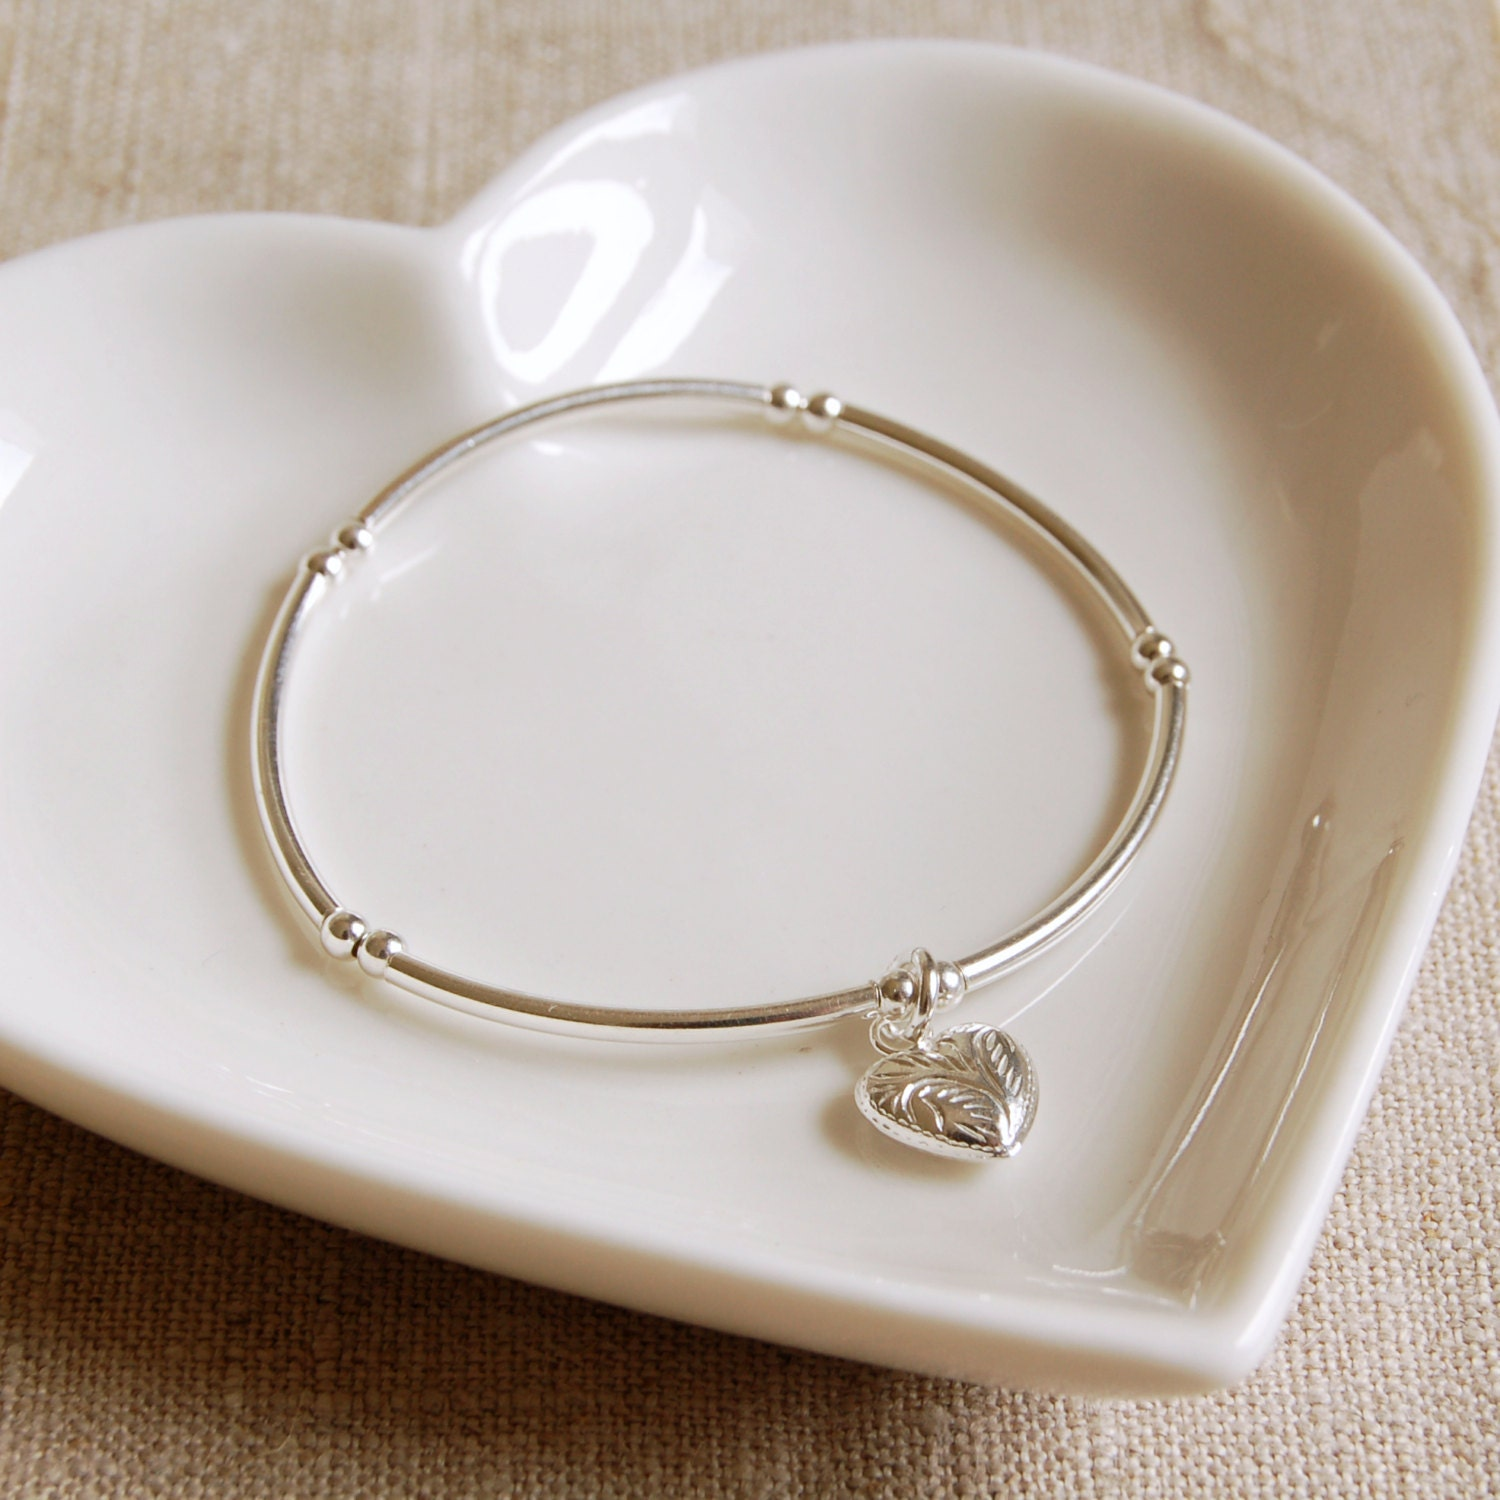 Silver Bead Bracelet with Patterned Silver Heart Charm (BRA108)  Wedding Anniversary Bridesmaid Birthday Gift